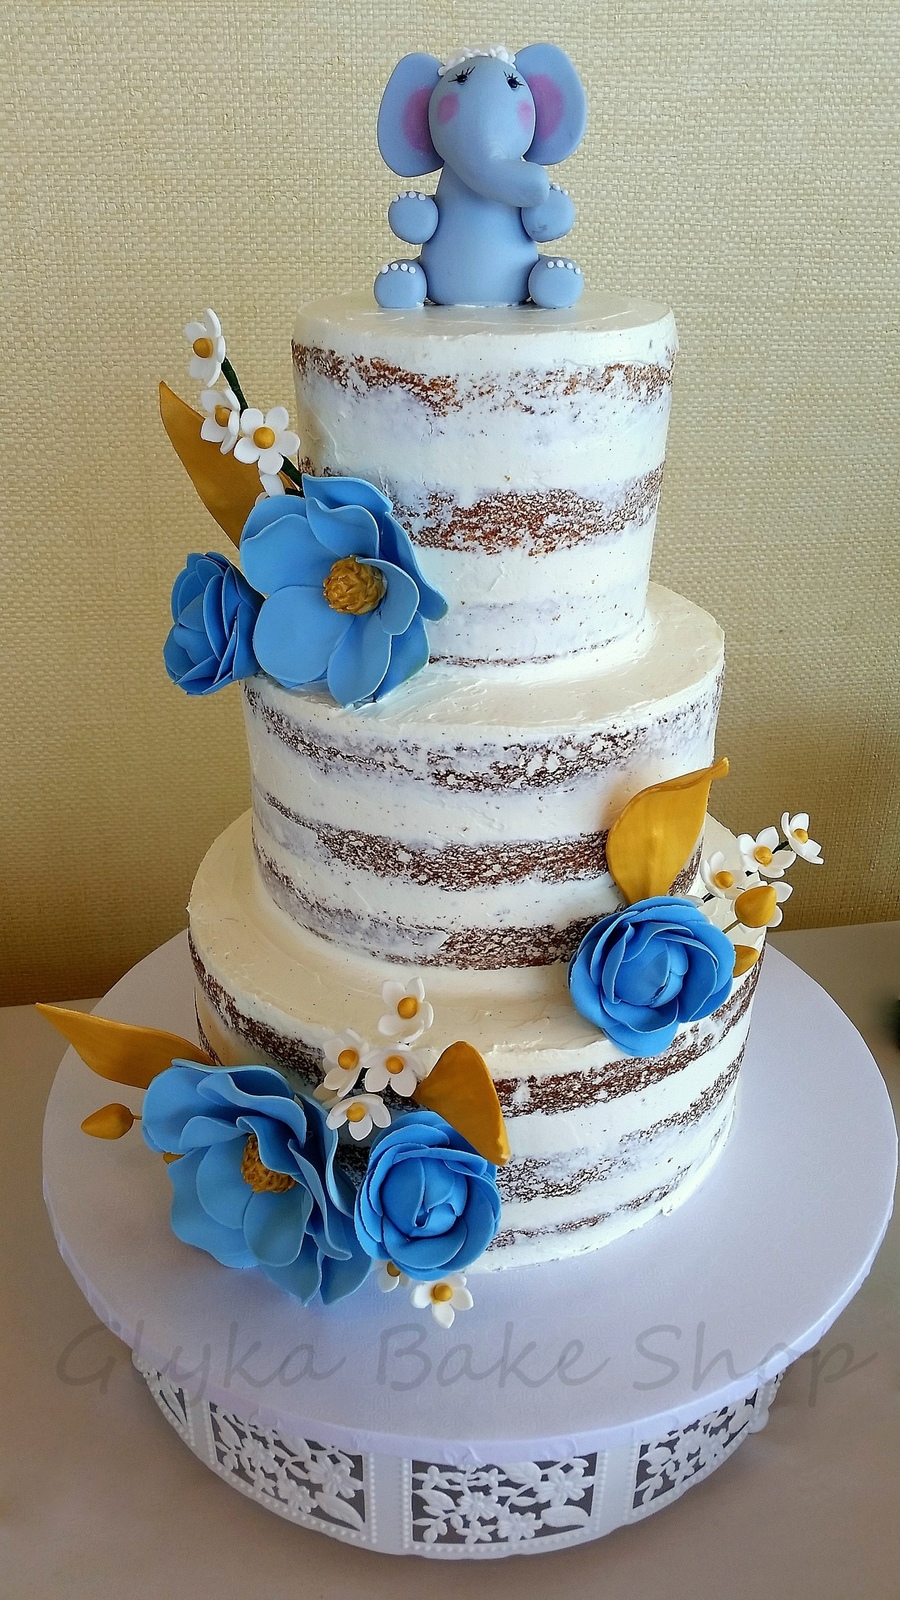 Naked Cake With Blue And Gold Florals - CakeCentral.com